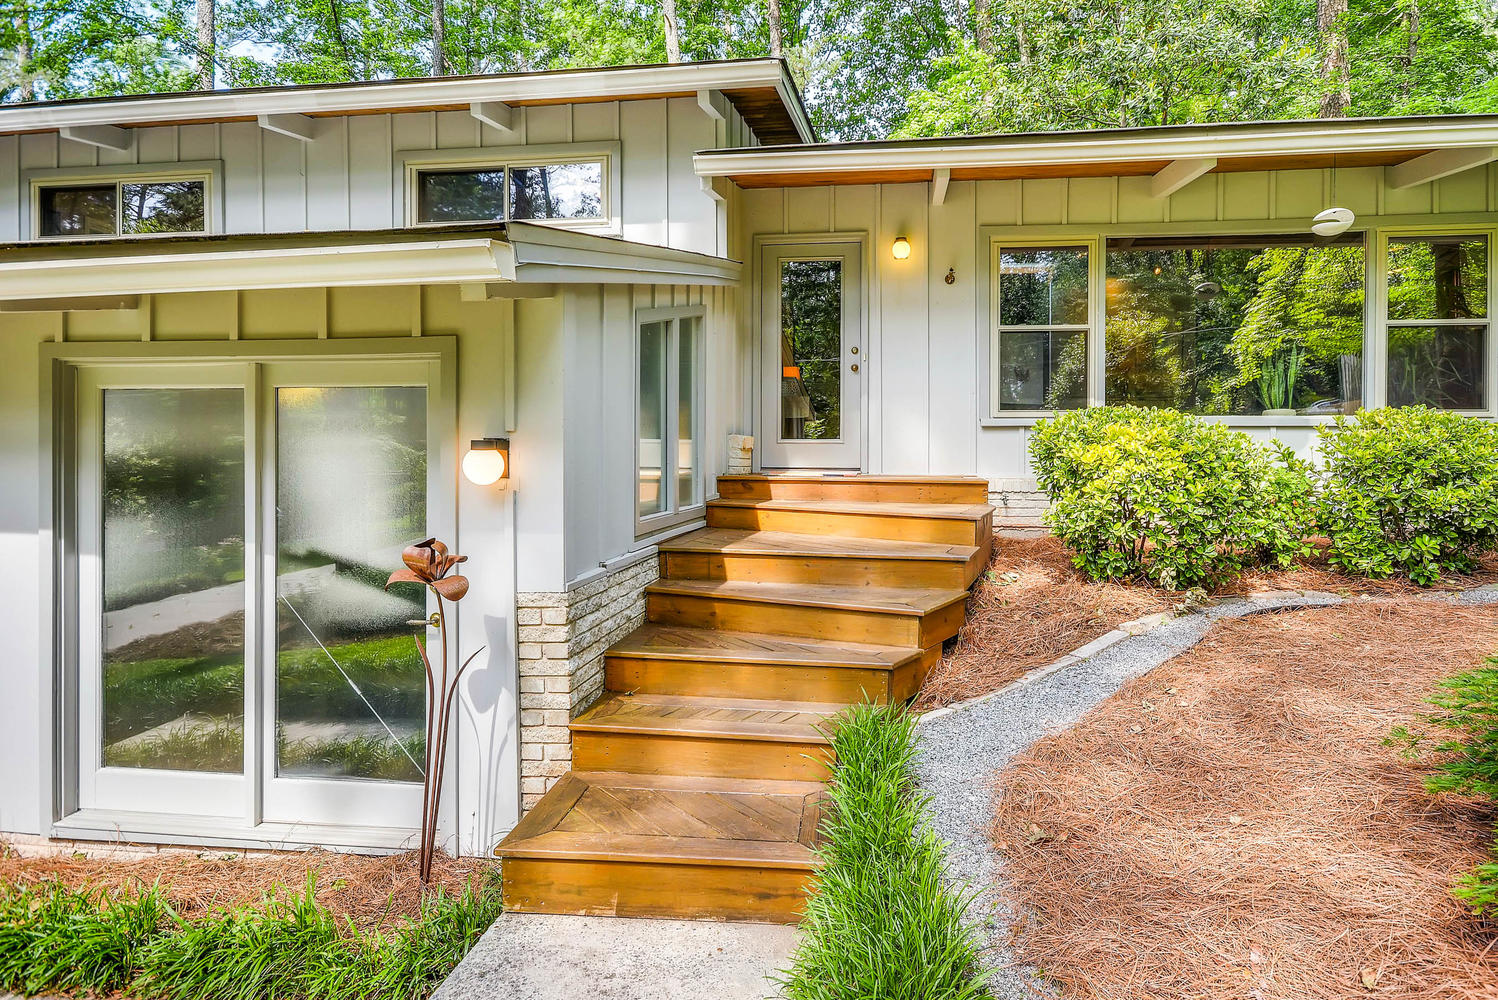 modern atlanta homes for sale mid century modern homes for sale - Modern Home For Sale